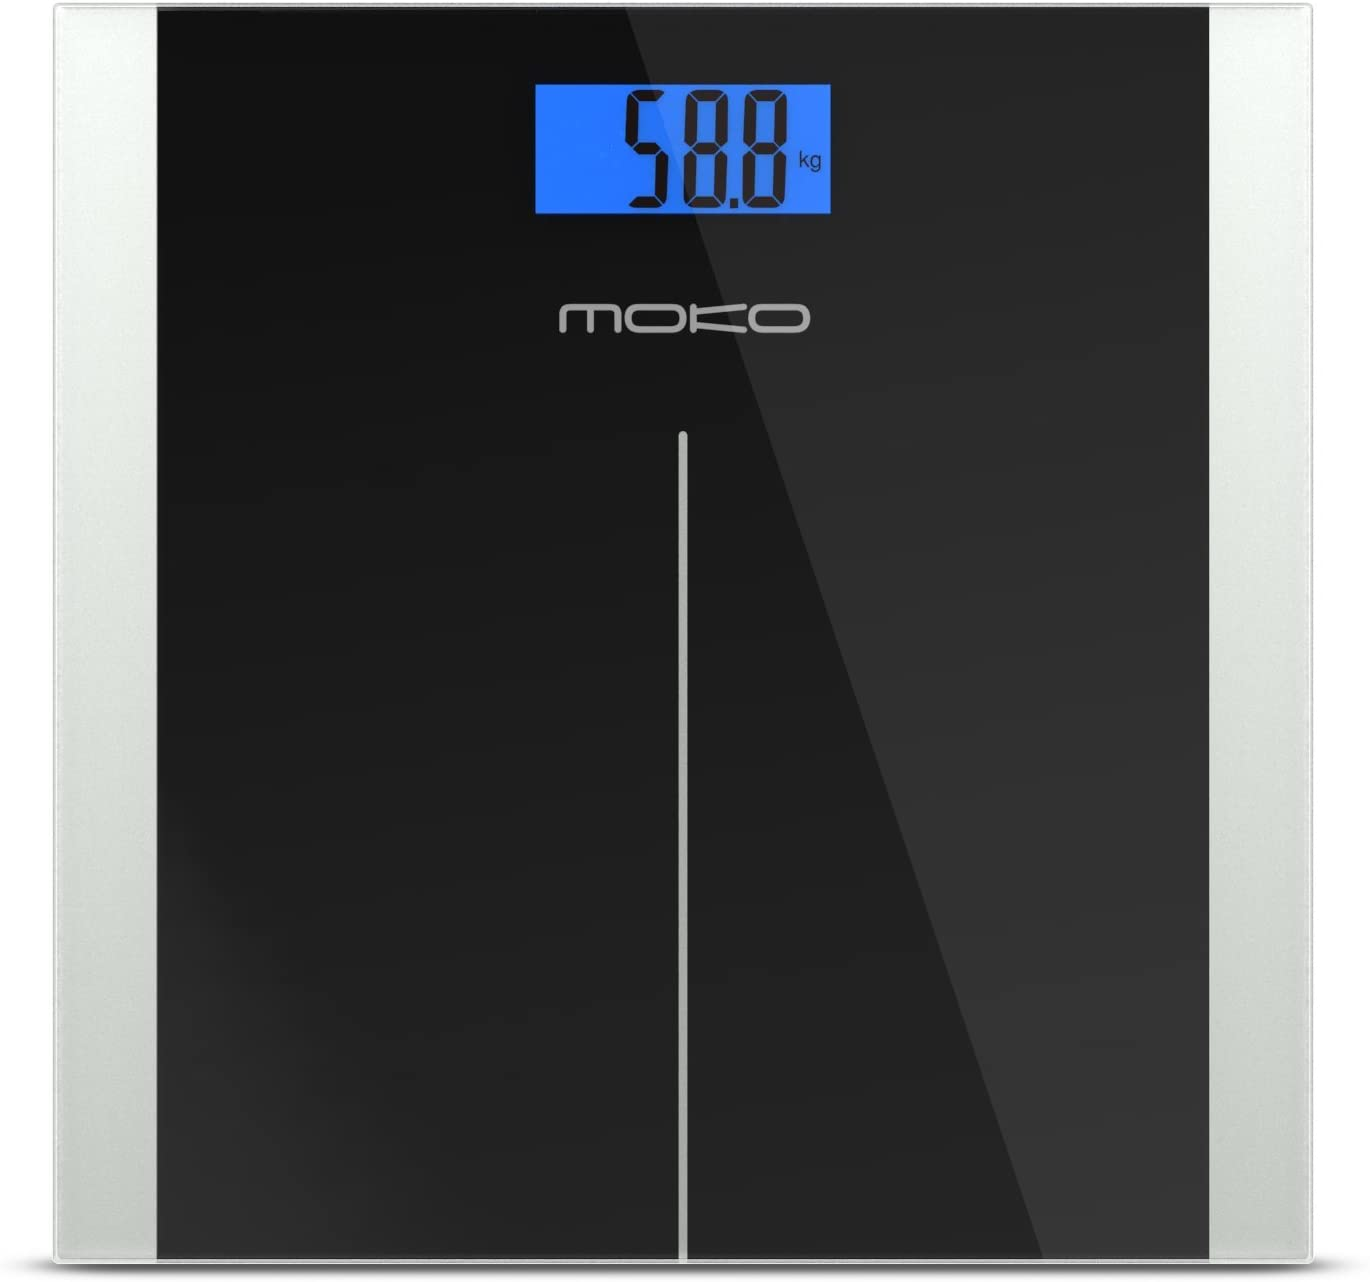 MoKo Wide Platform Digital Body Weight Bathroom Scale, Premium High Precision Accuracy, Holds up to 396lb/180kg, Black